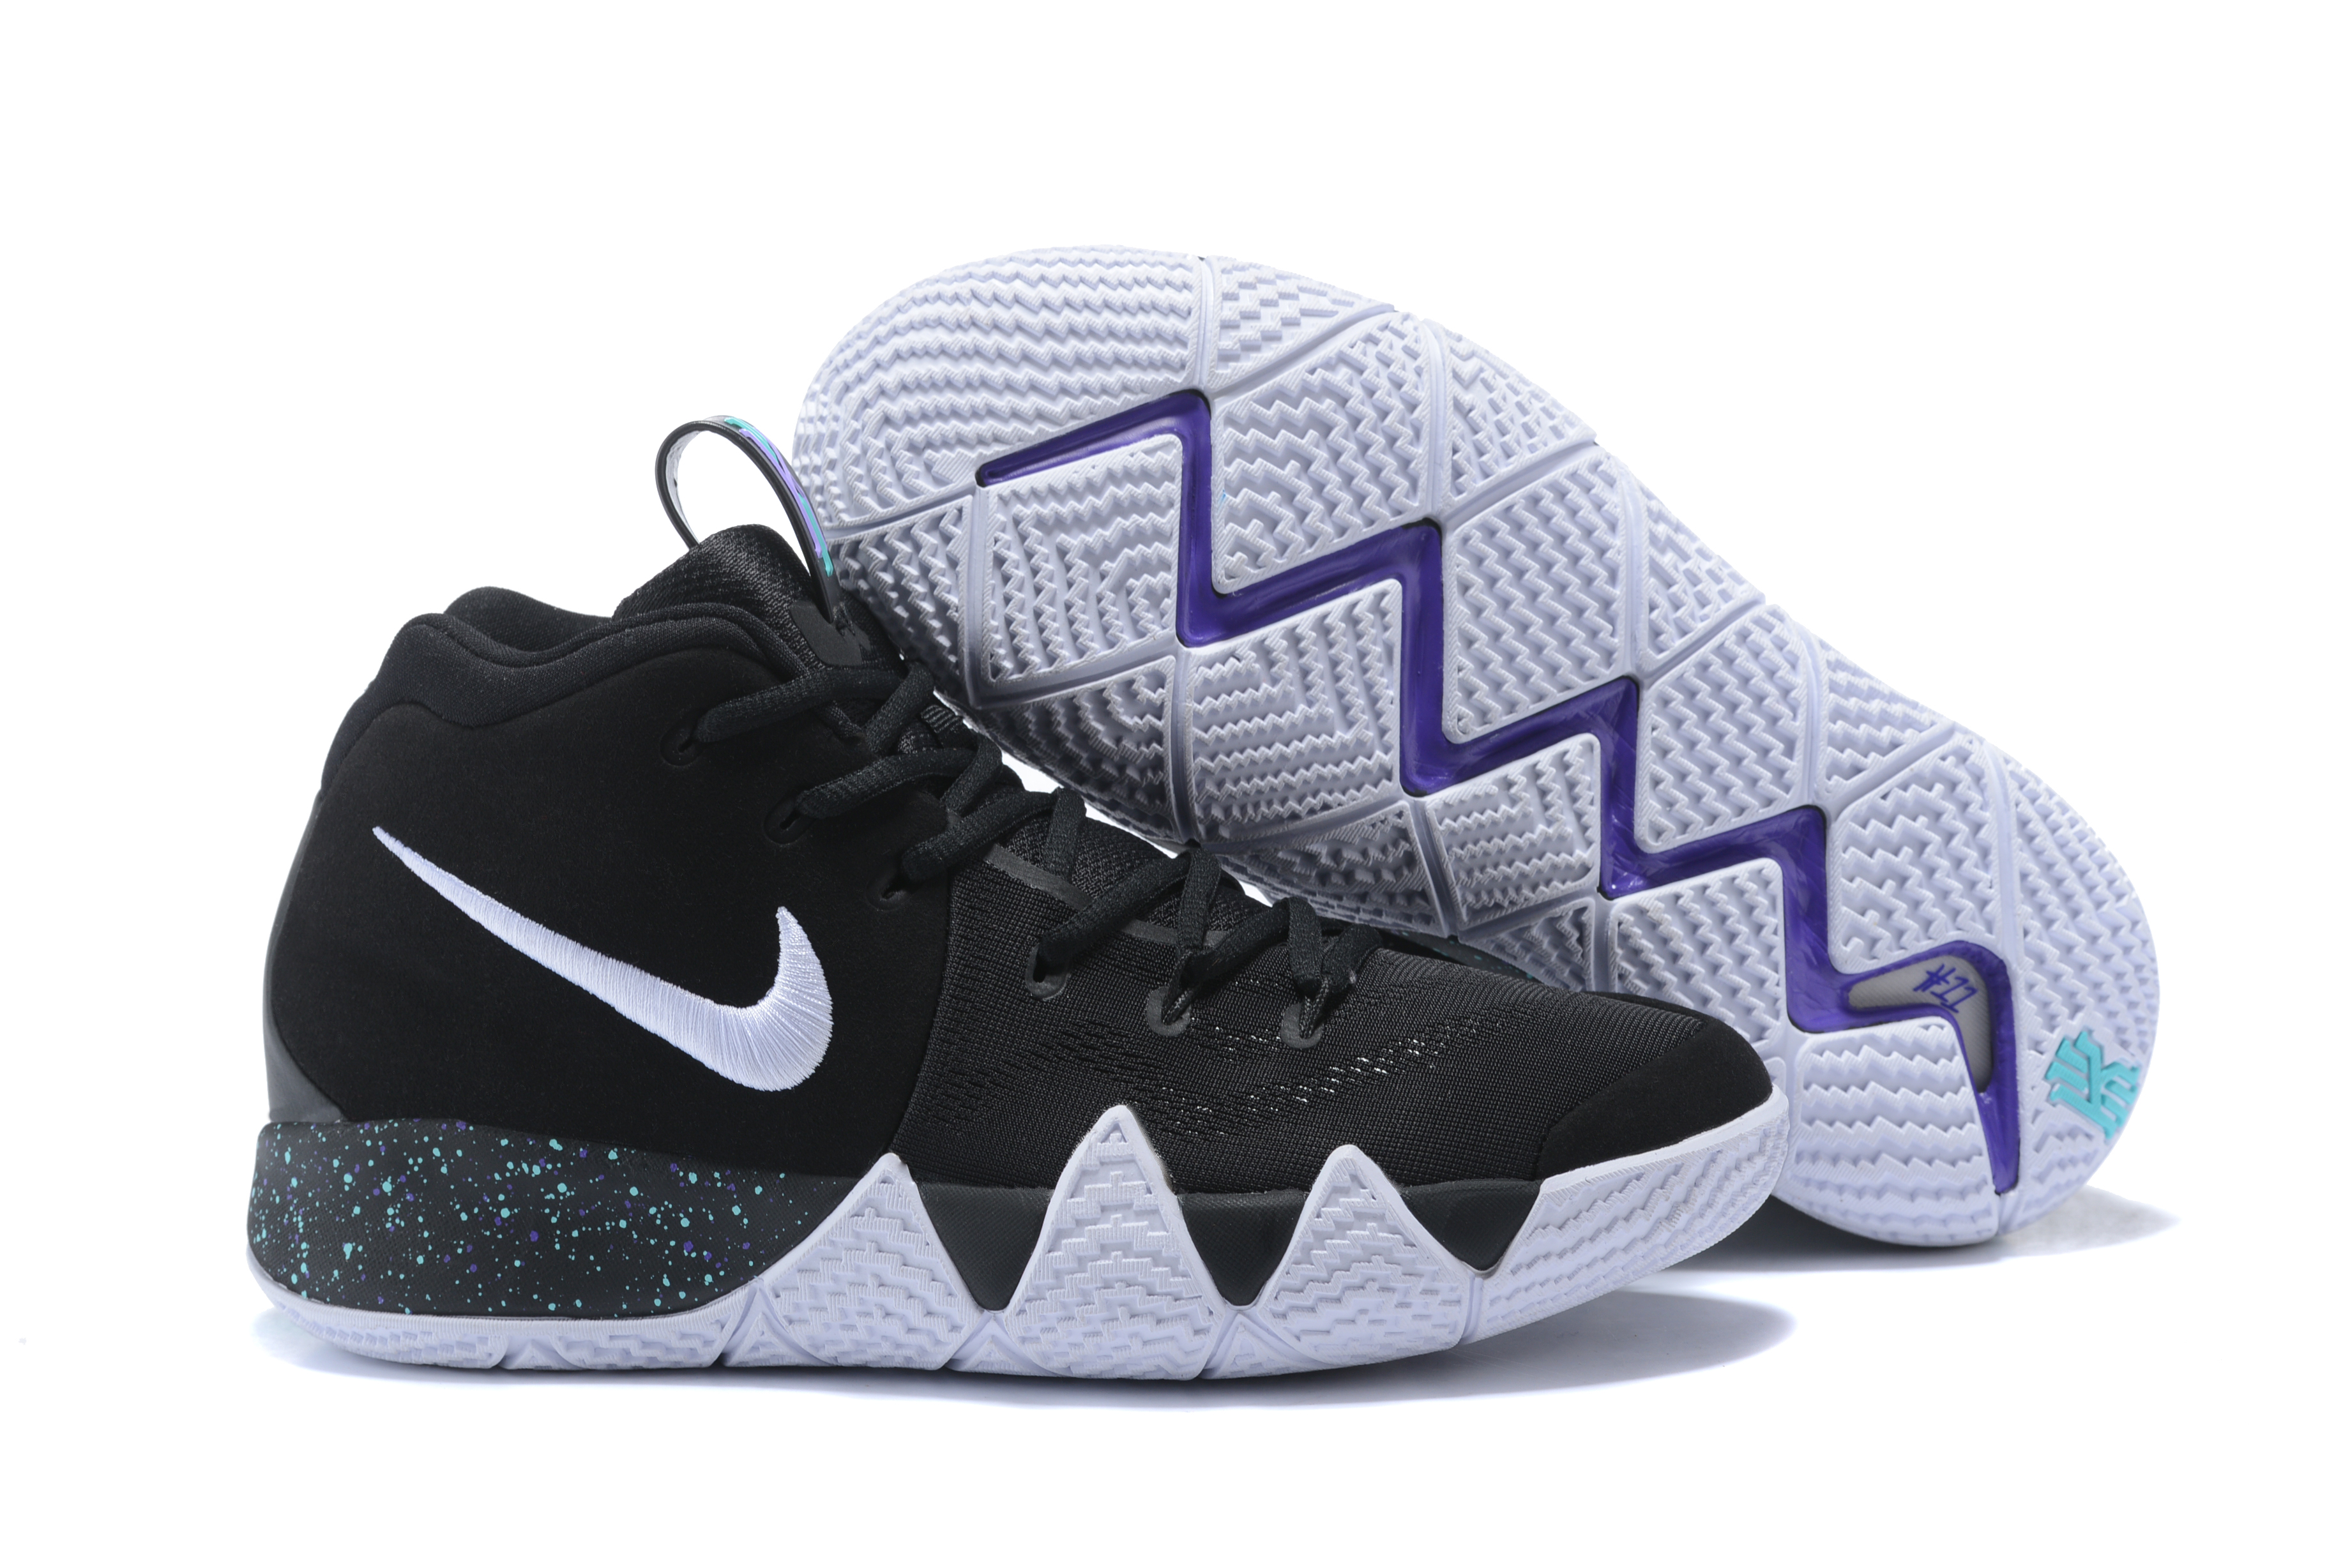 2018 Kyrie 4 Black White Shoes For Sale